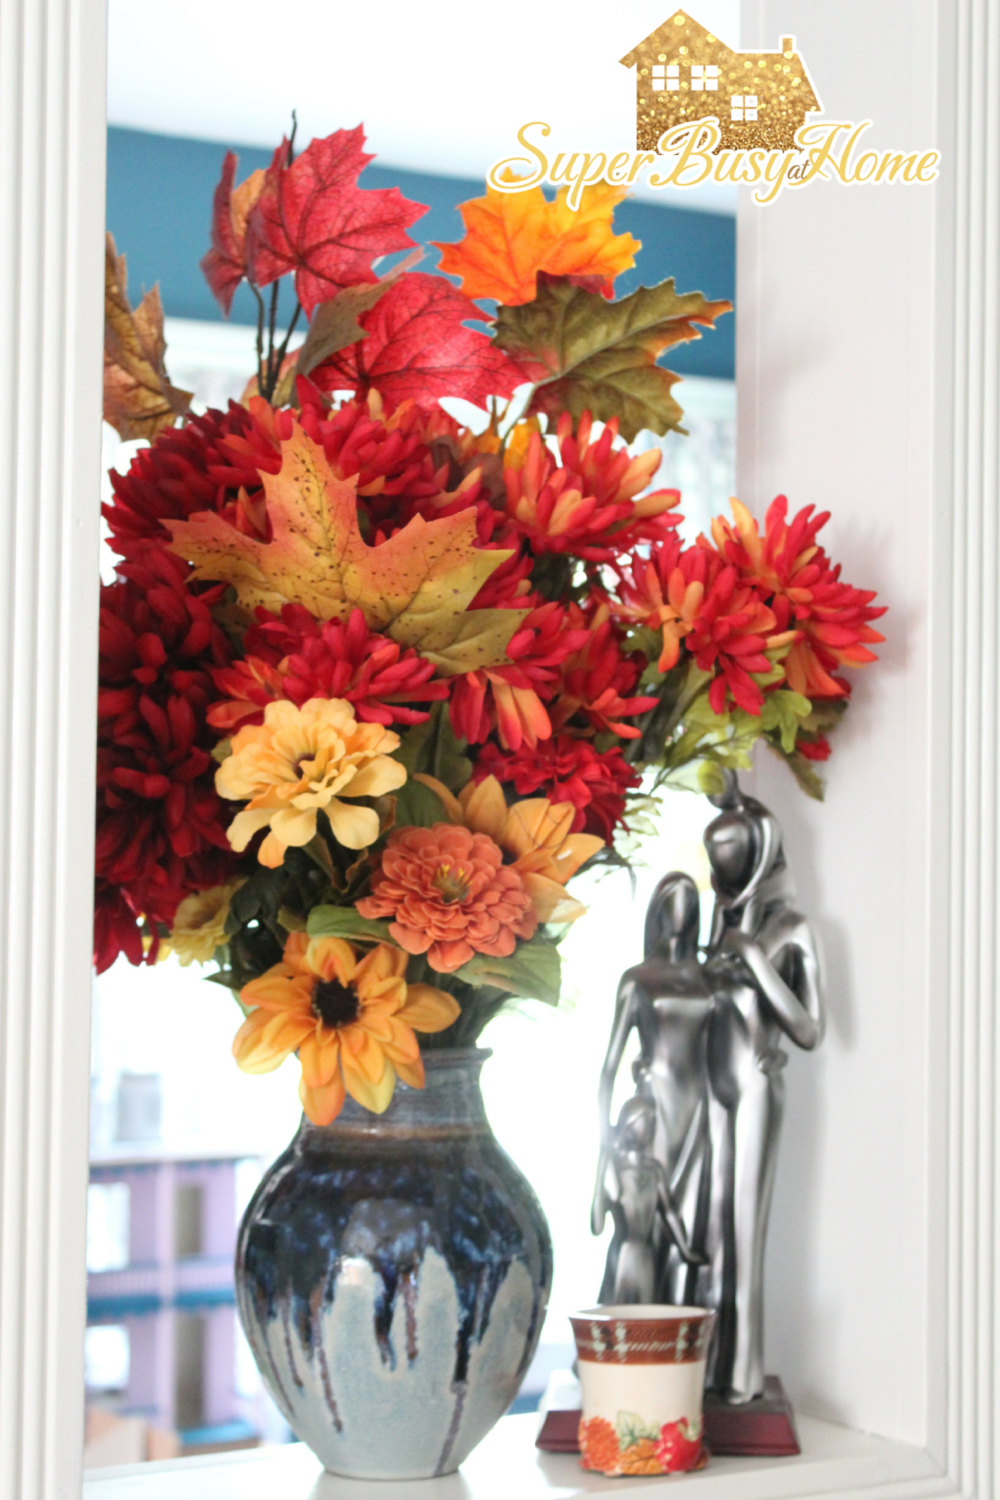 Fall Decor Ideas.  Making a big impact with what you have.  Super Busy at Home